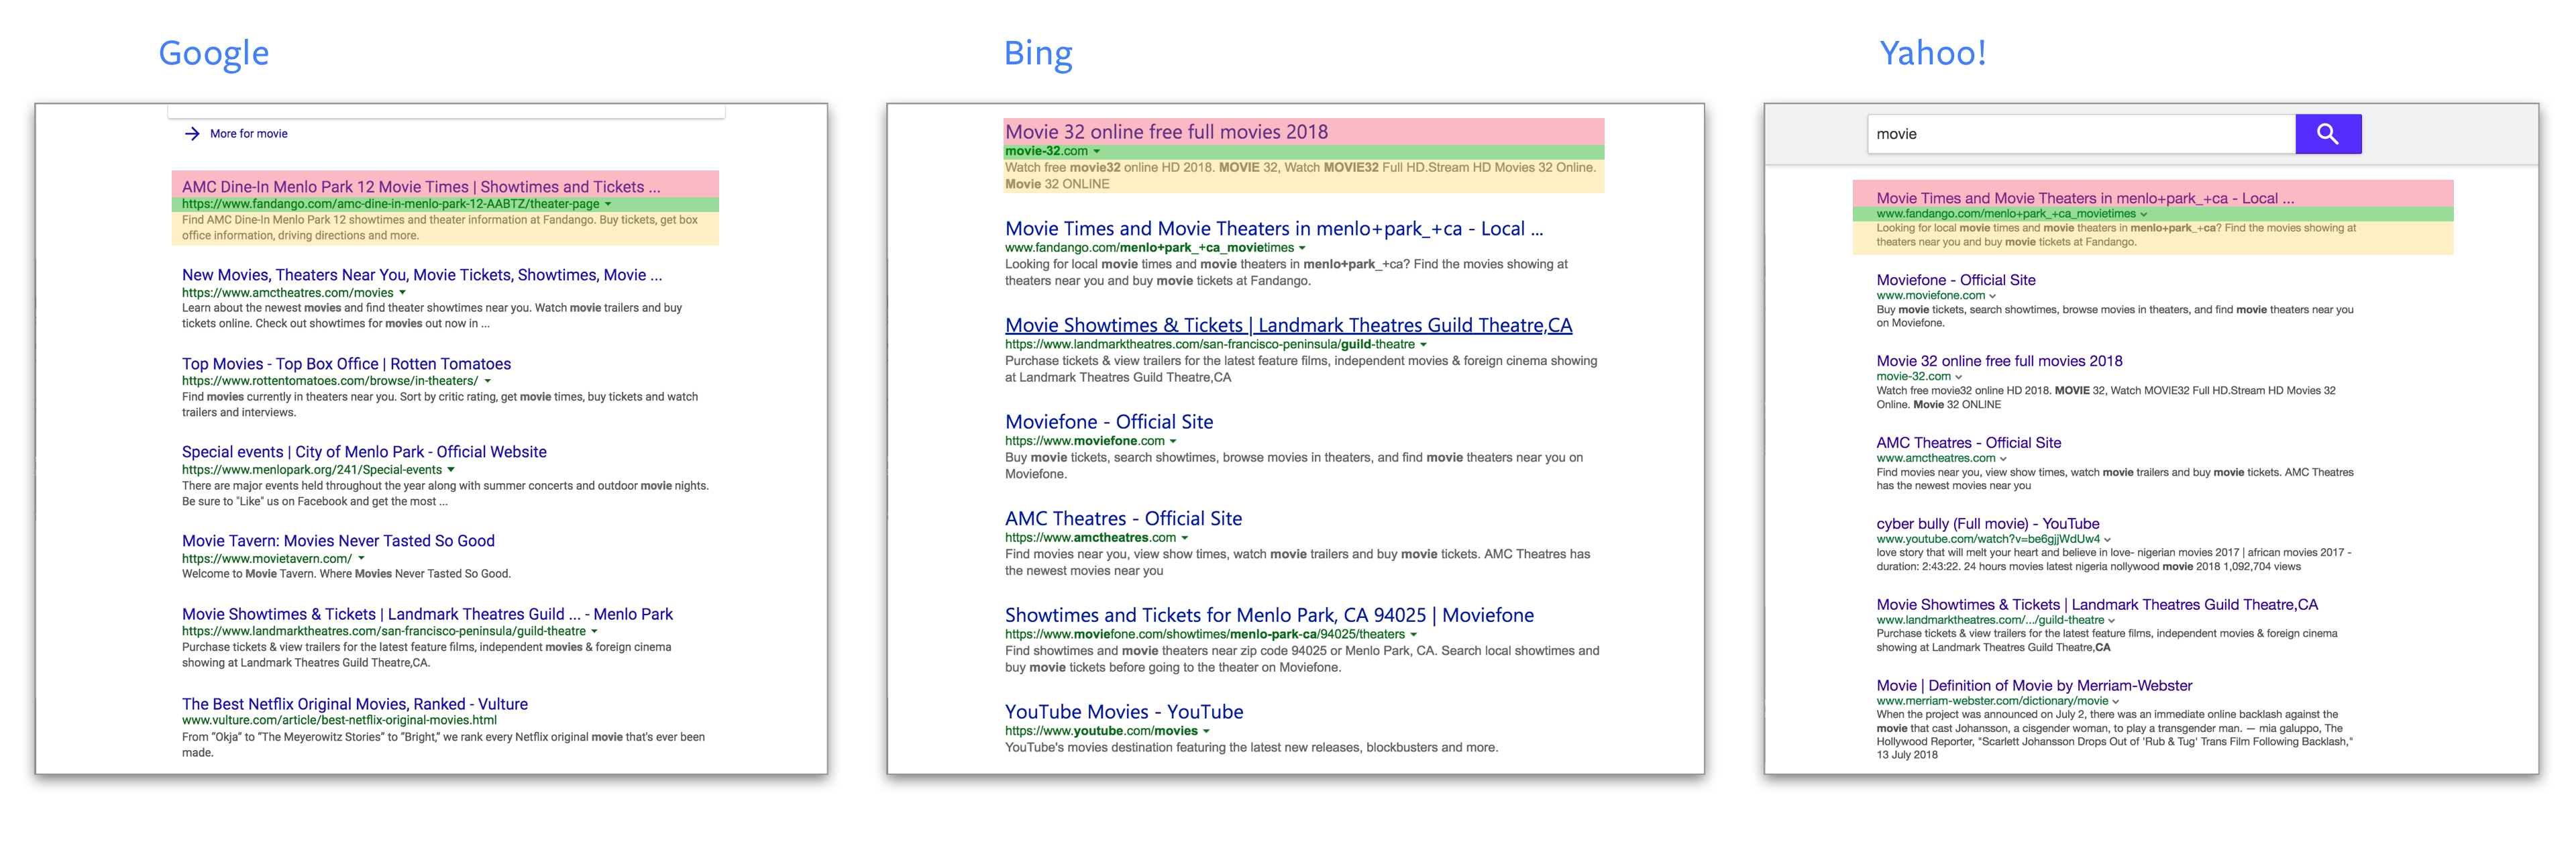 Design scannable and effective search results UI on Web